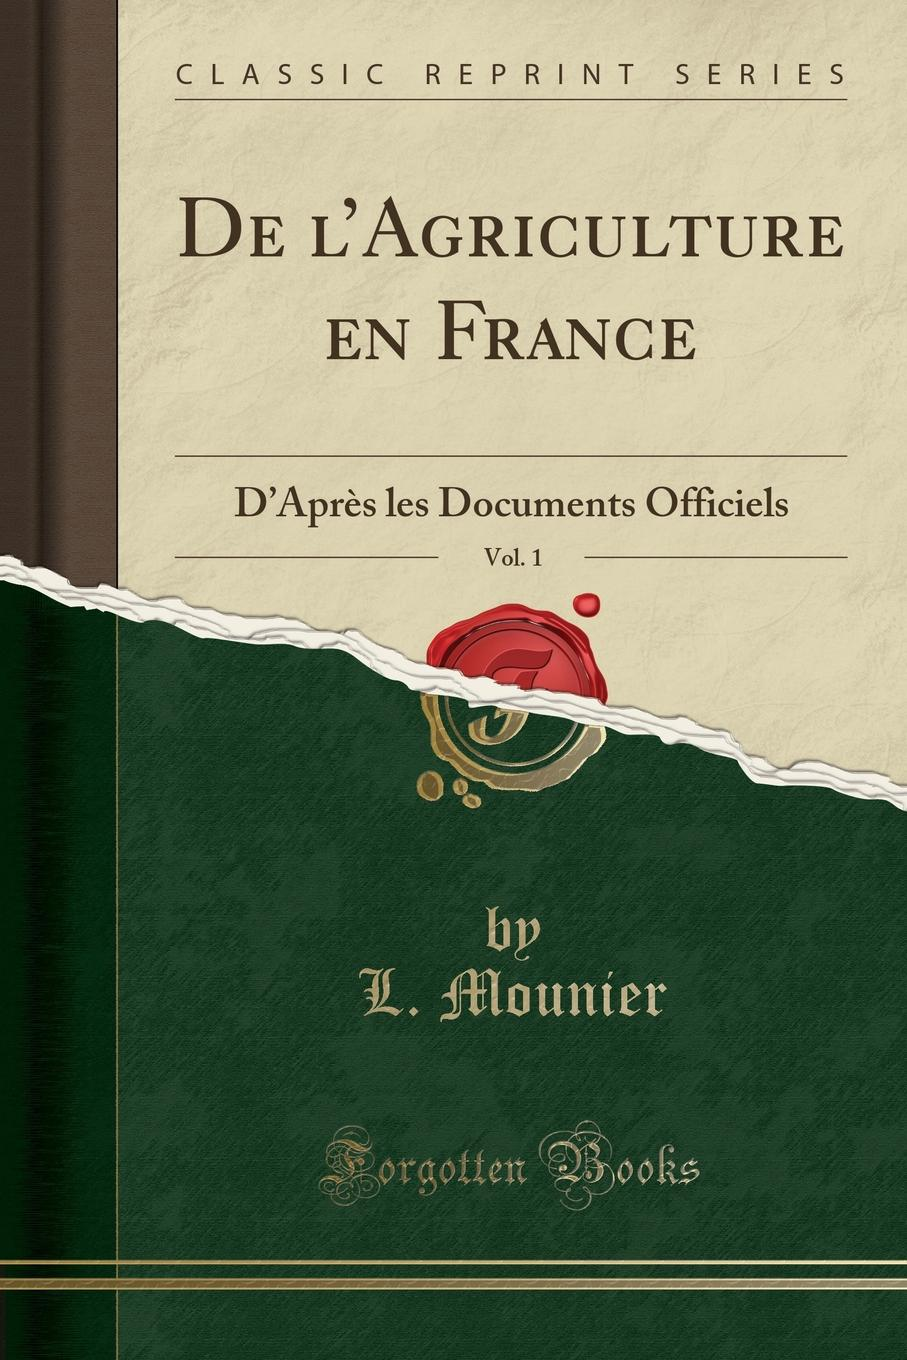 De l.Agriculture en France, Vol. 1. D.Apres les Documents Officiels (Classic Reprint) Excerpt from De l'Agriculture en France, Vol. 1: D'AprР?s...